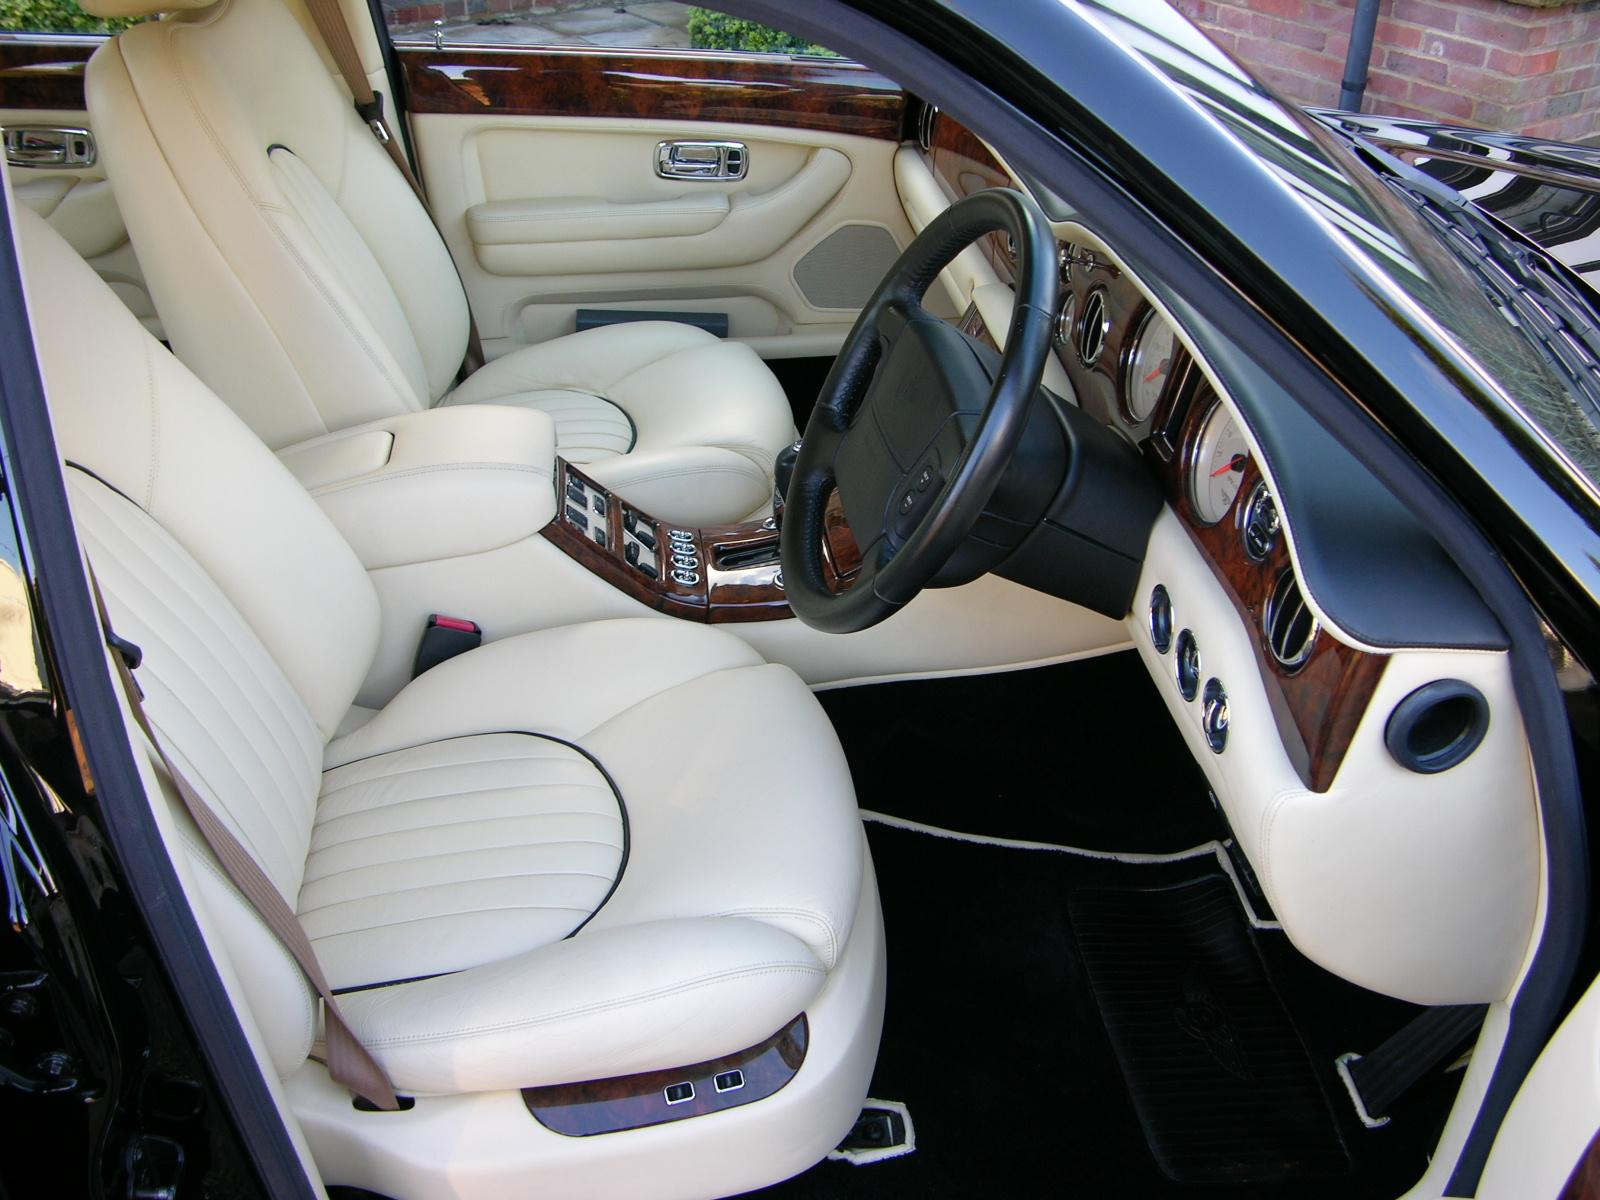 File2001 bentley arnage red label flickr the car spy 17g file2001 bentley arnage red label flickr the car spy 17 vanachro Choice Image